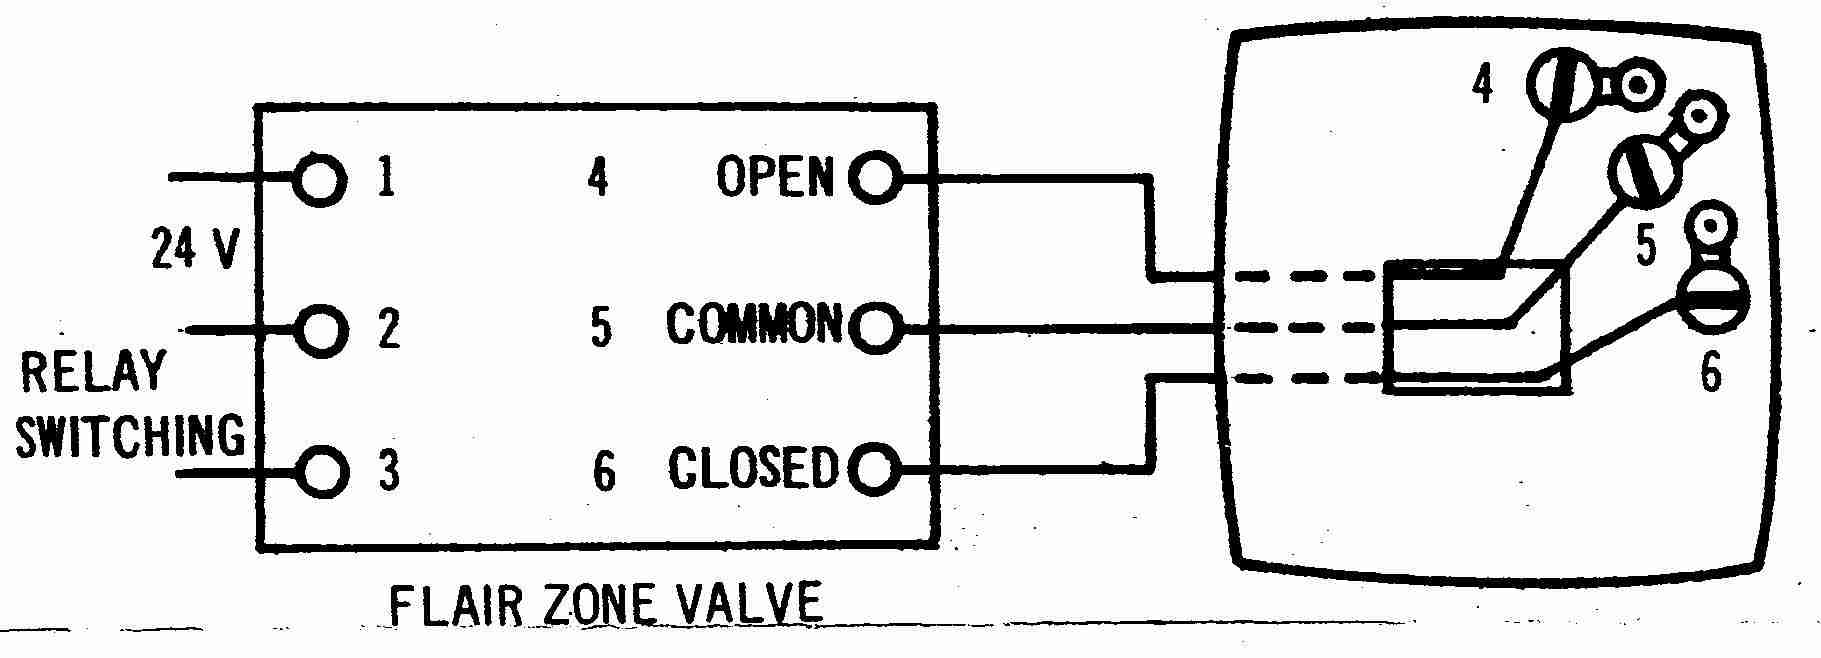 Flair3w_001_DJFc2 room thermostat wiring diagrams for hvac systems robertshaw gas valve wiring diagram at panicattacktreatment.co